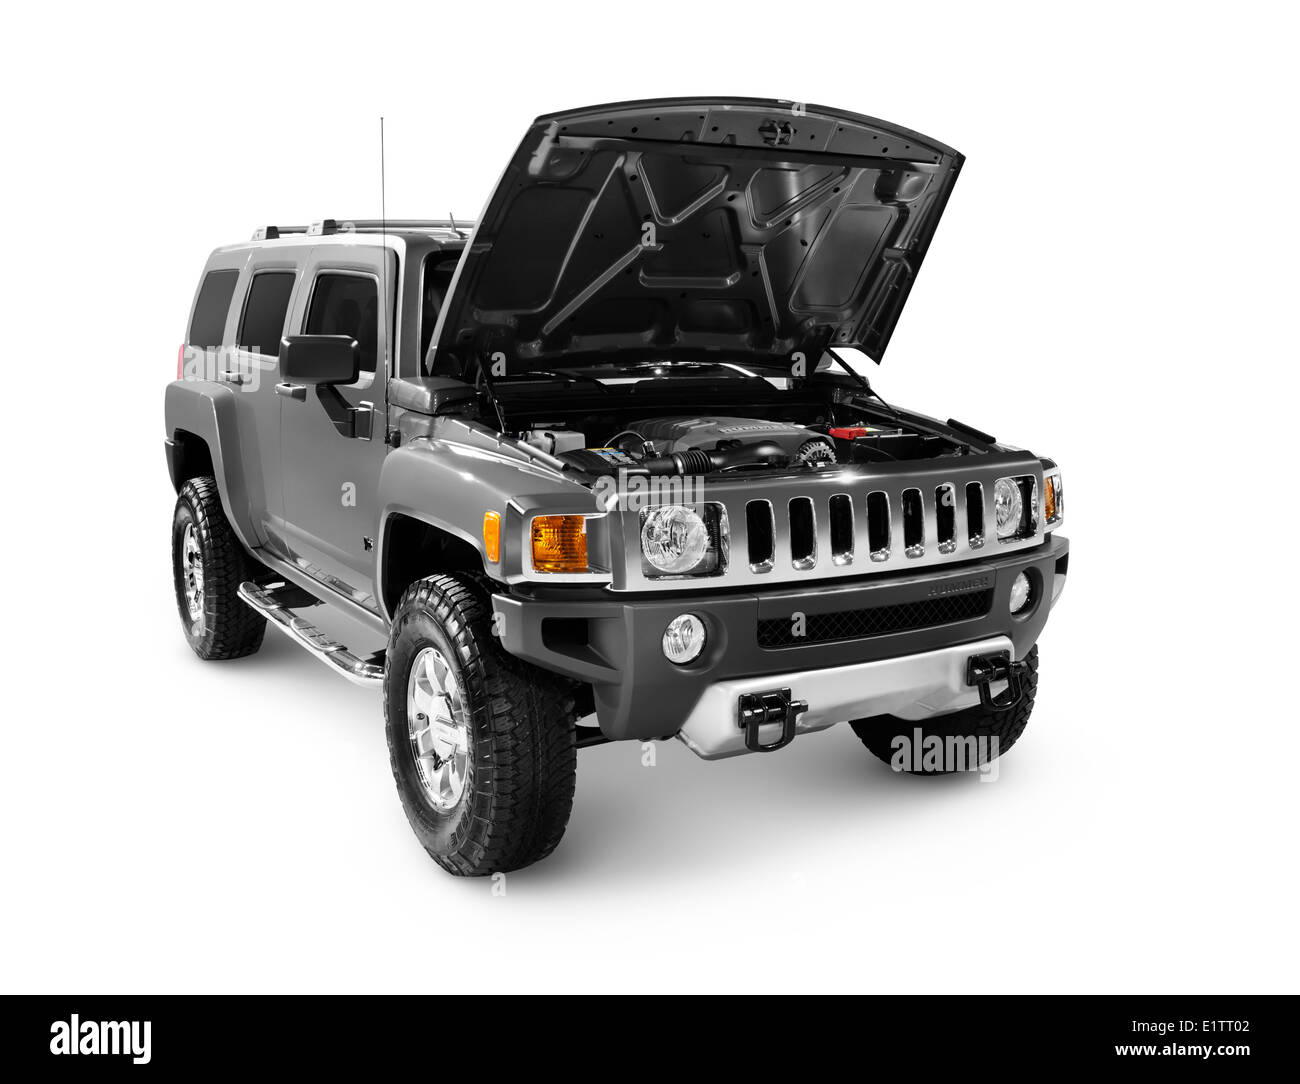 Hummer H3 full-size SUV with open hood revealing engine isolated on white background. - Stock Image